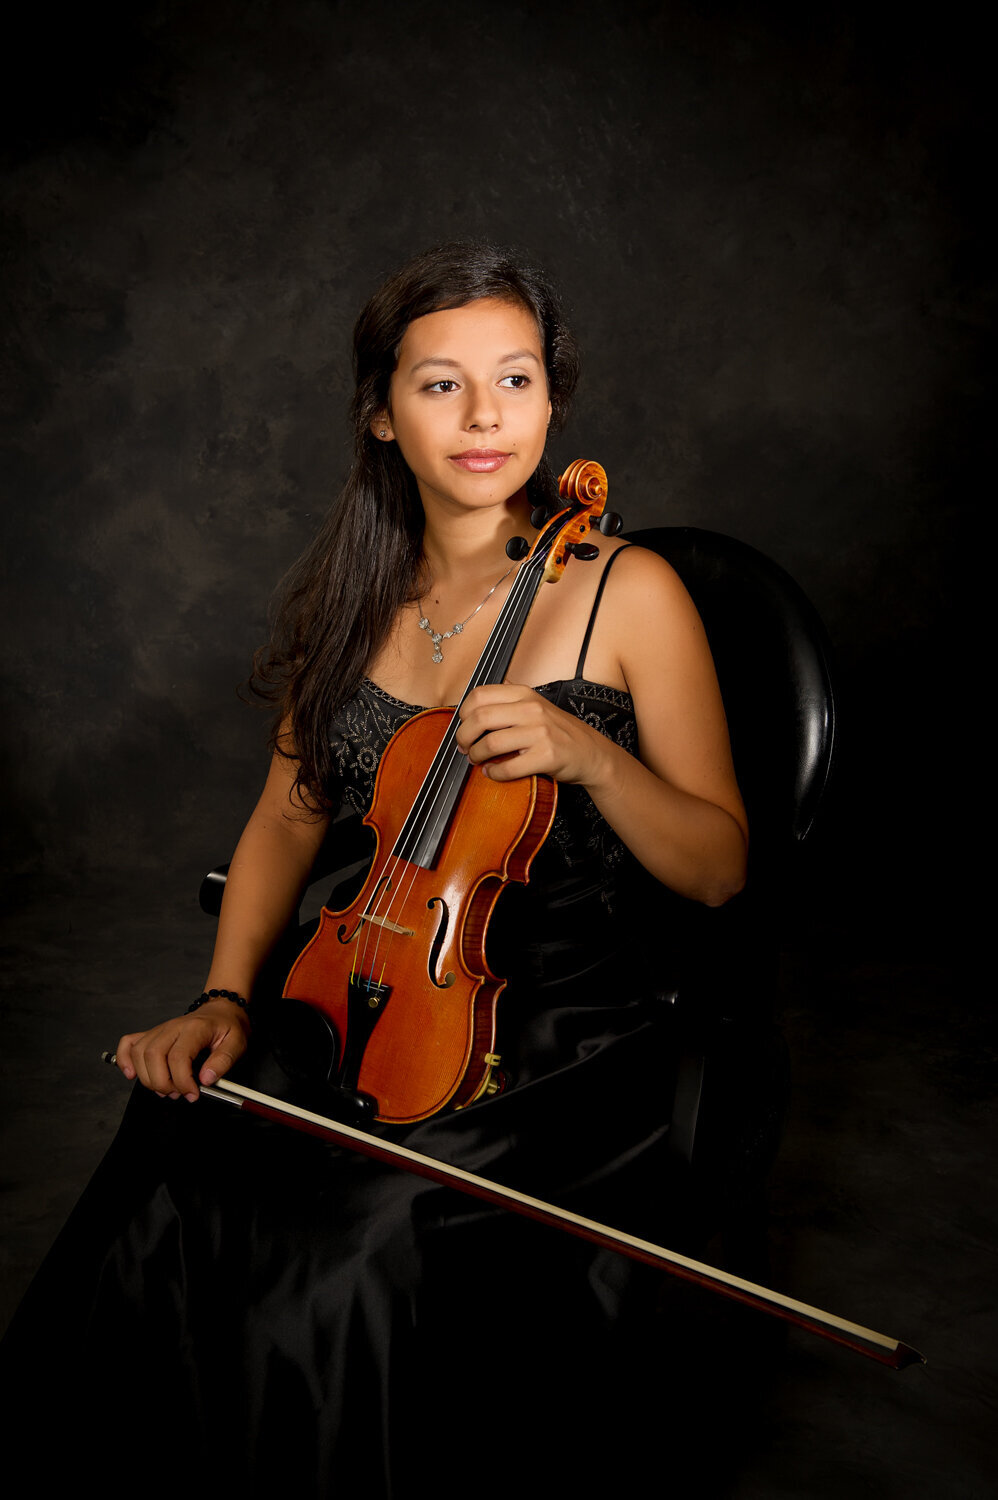 formal portrait senior girl with violin